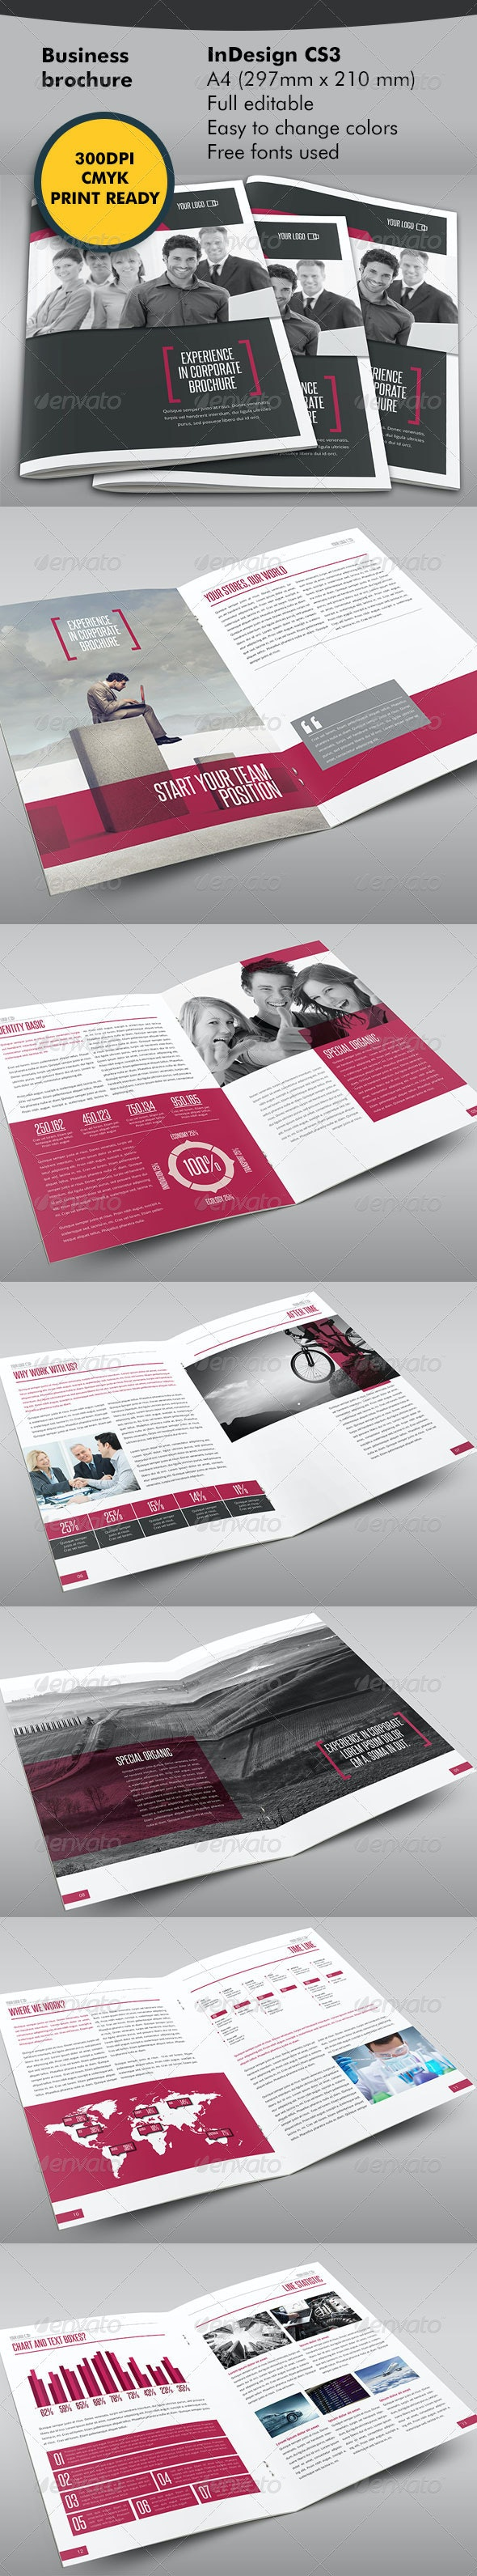 Business One Step Further Brochure - Corporate Brochures